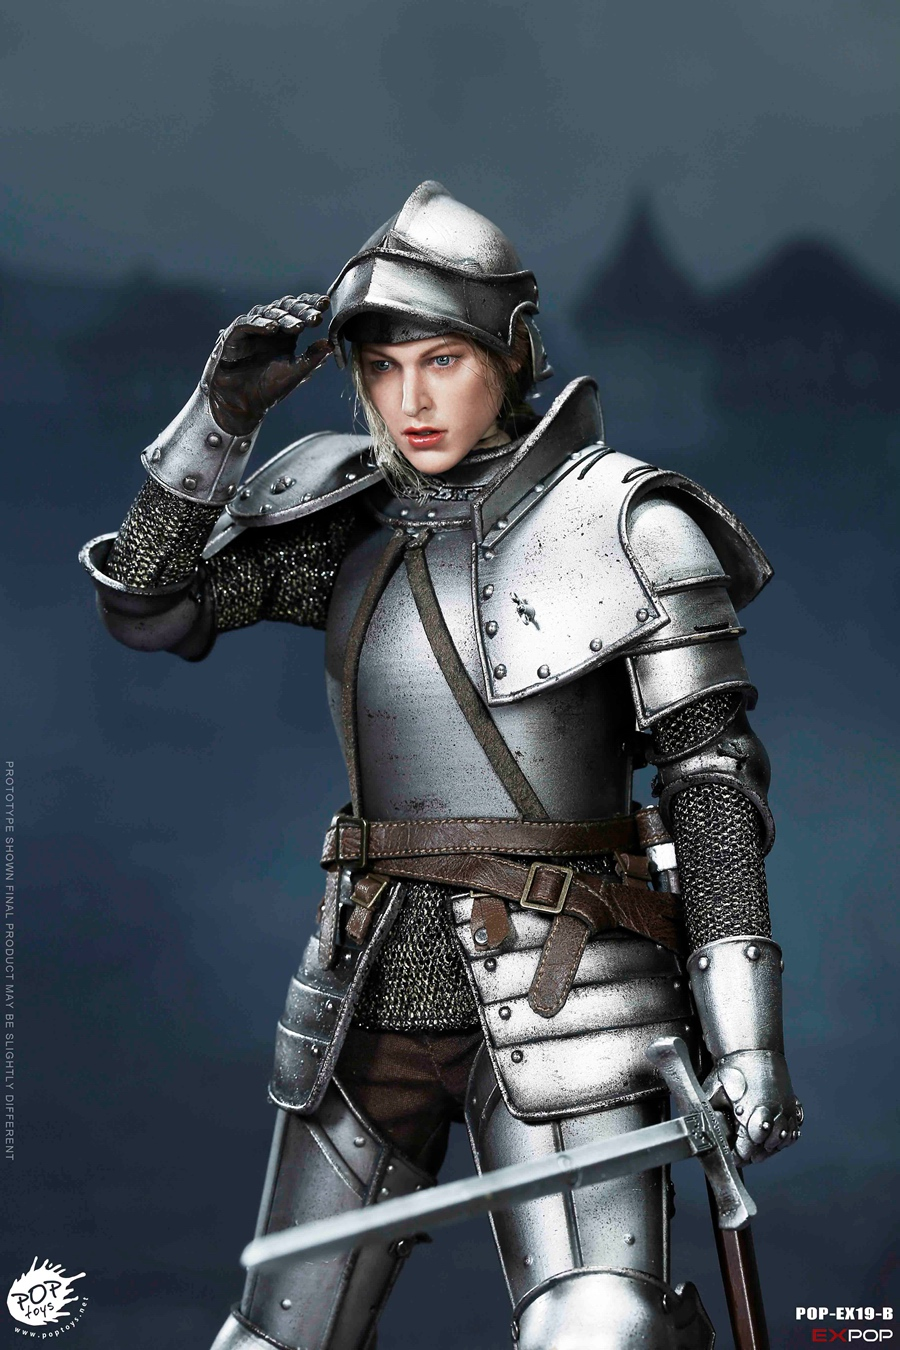 NEW PRODUCT: POPTOYS New Products: 1/6 St. Knights - Assault Edition & Triumph Edition & Iron Armor (POP-EX19 ABC) 16461310